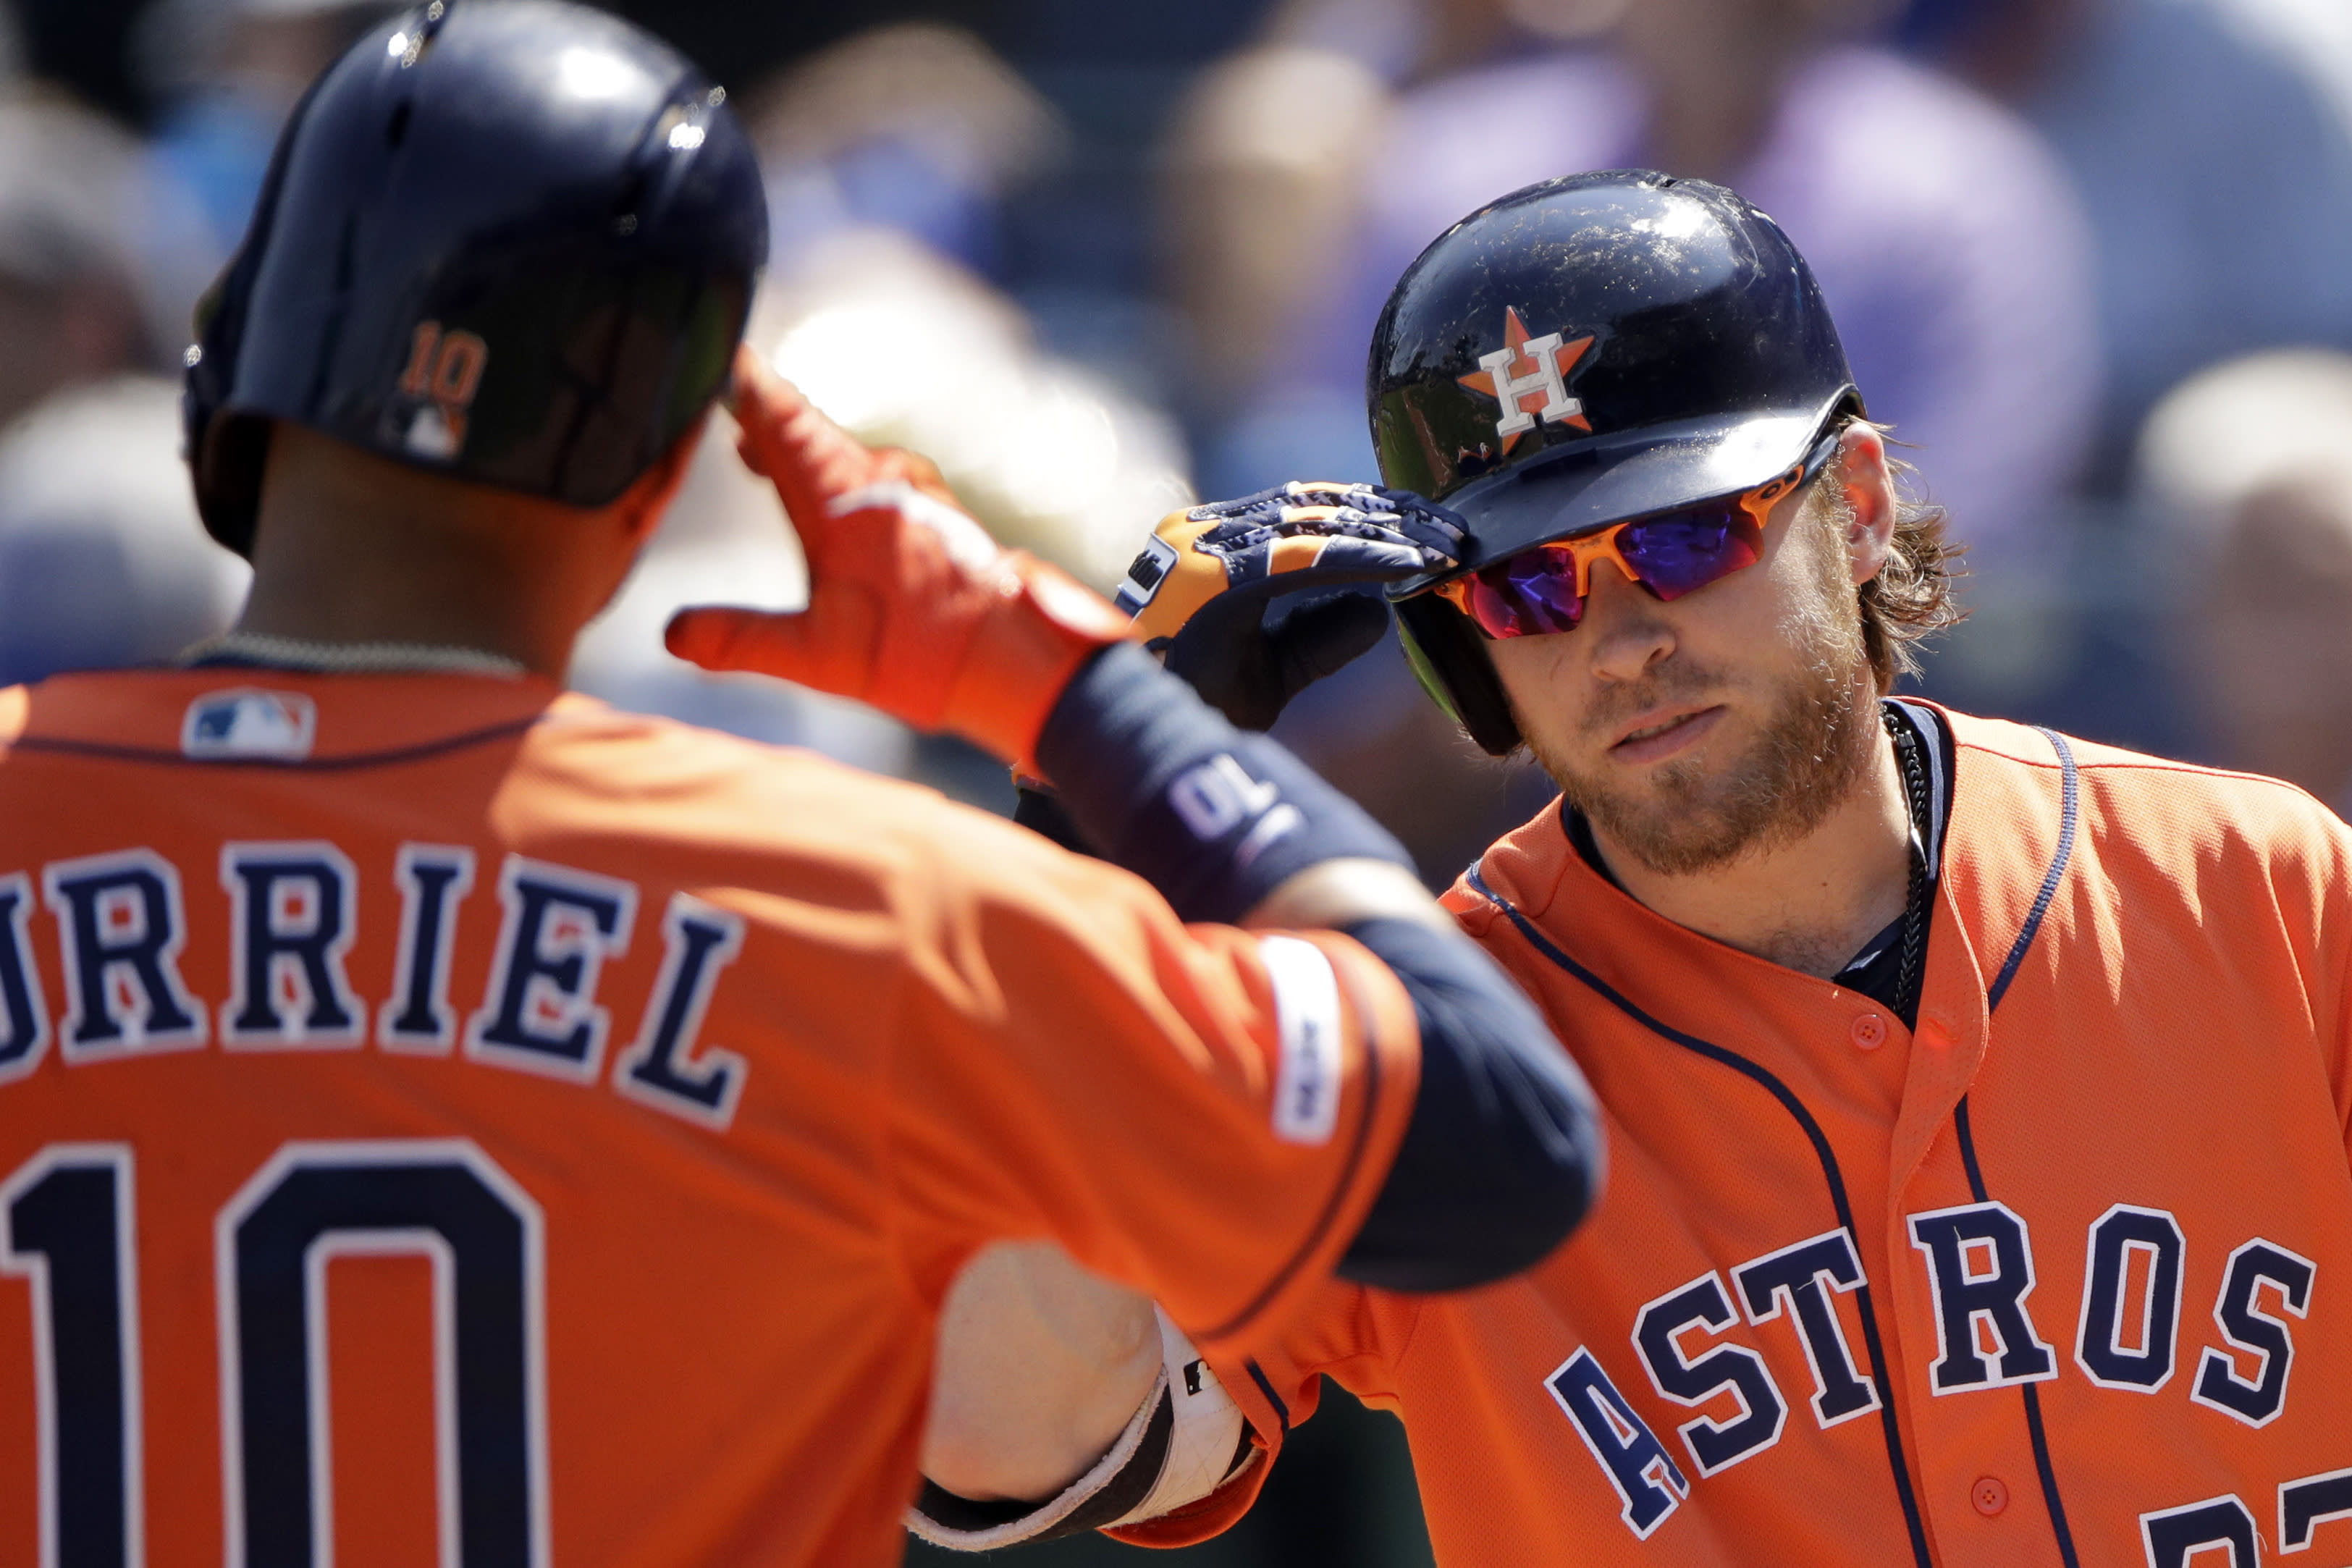 Houston Astros' Yuli Gurriel (10) celebrates with Josh Reddick after hitting a solo home run during the second inning of a baseball game against the Kansas City Royals Sunday, Sept. 15, 2019, in Kansas City, Mo. (AP Photo/Charlie Riedel)